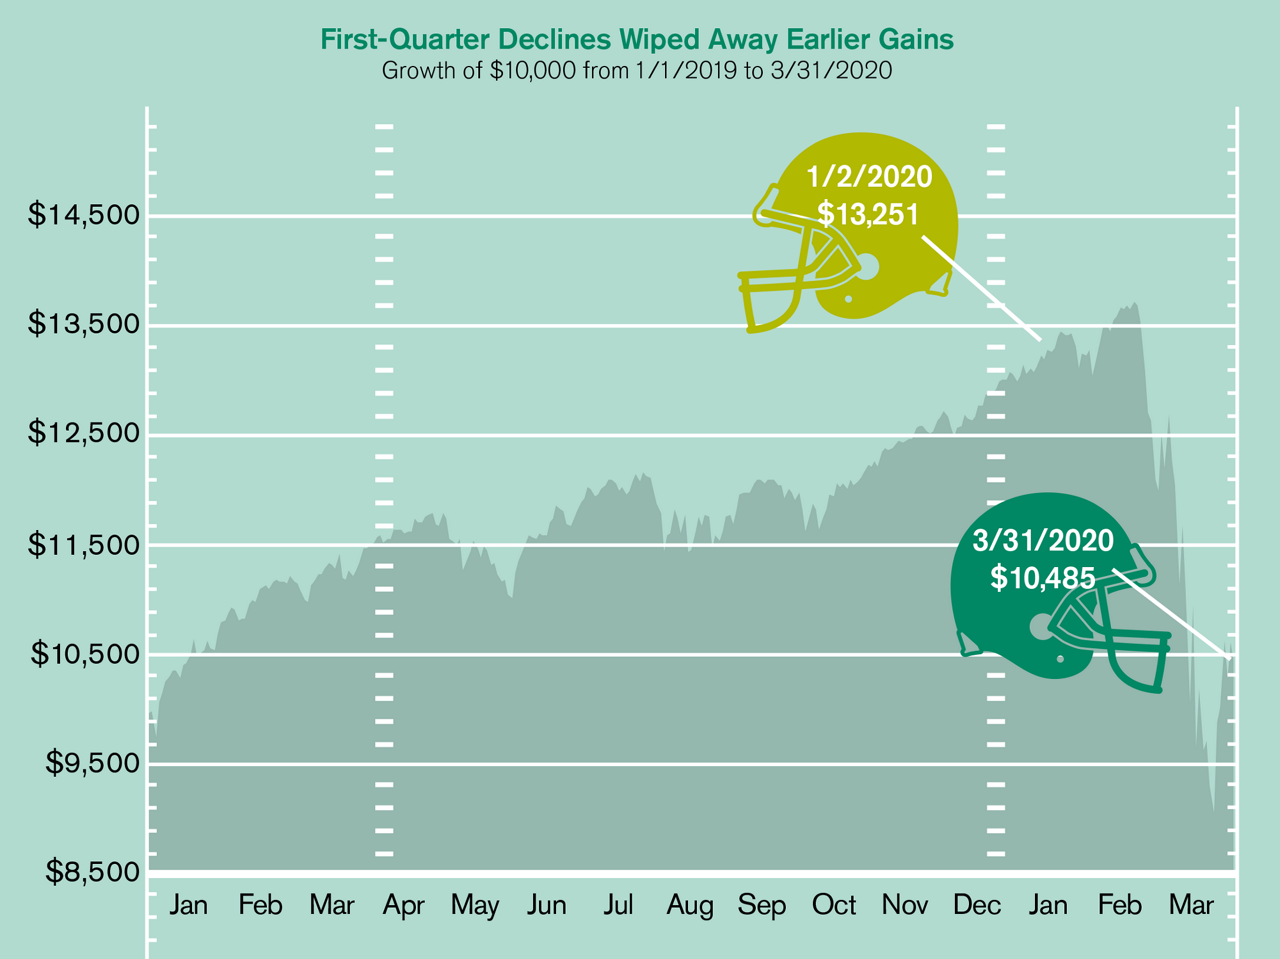 Wining with Defense: First-Quarter Declines Wiped Away Earlier Gains